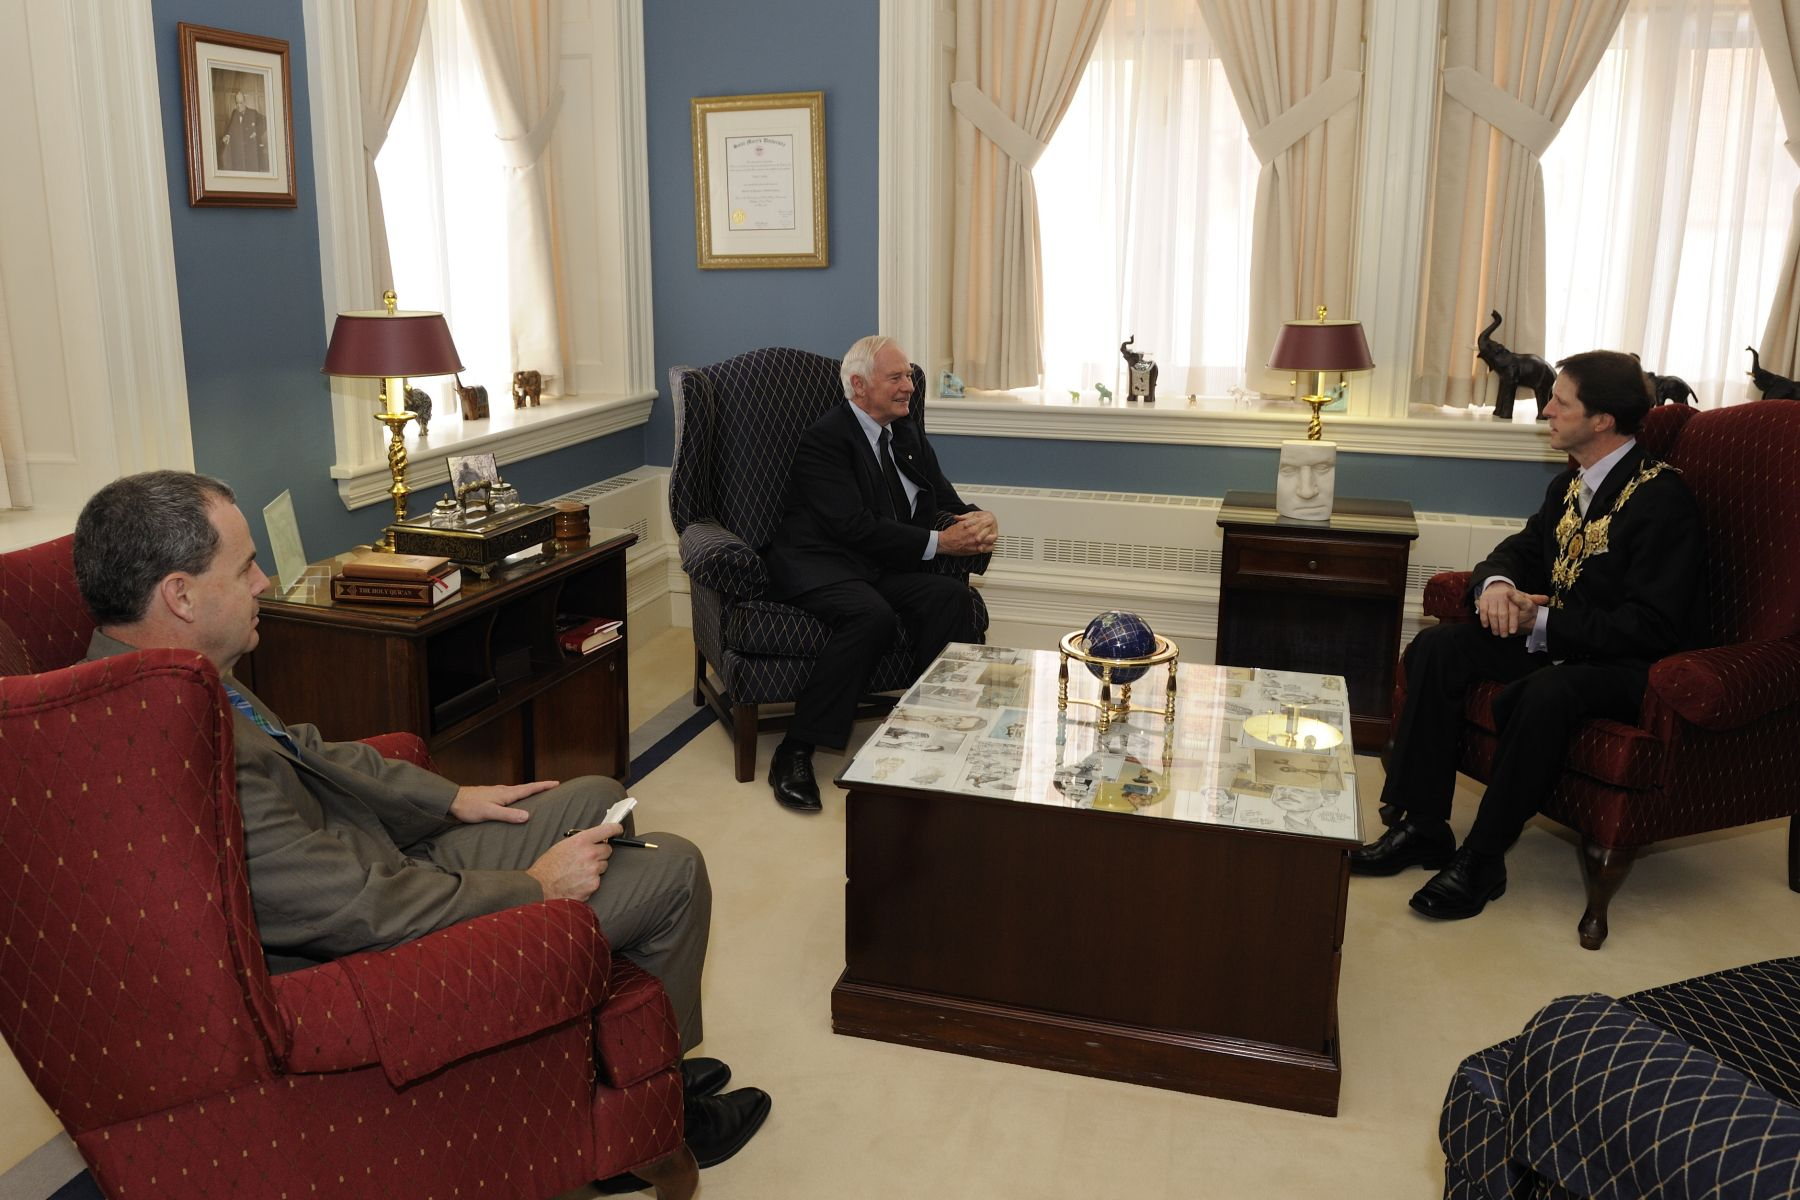 The Secretary to the Governor General Mr. Stephen Wallace (left) also attended the meeting.